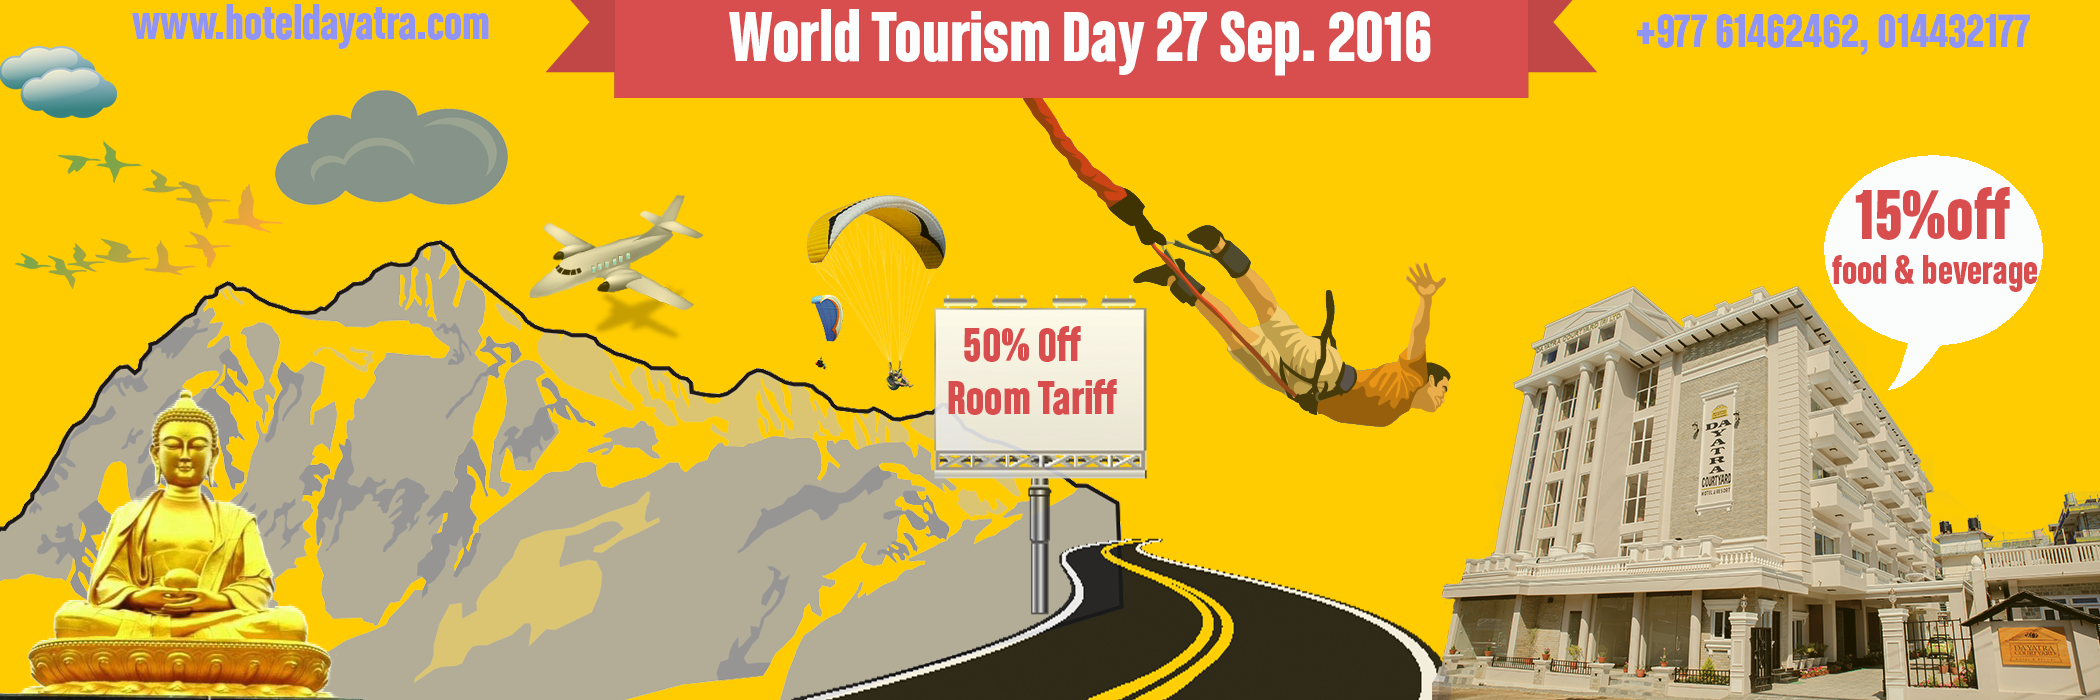 Happy World Tourism Day